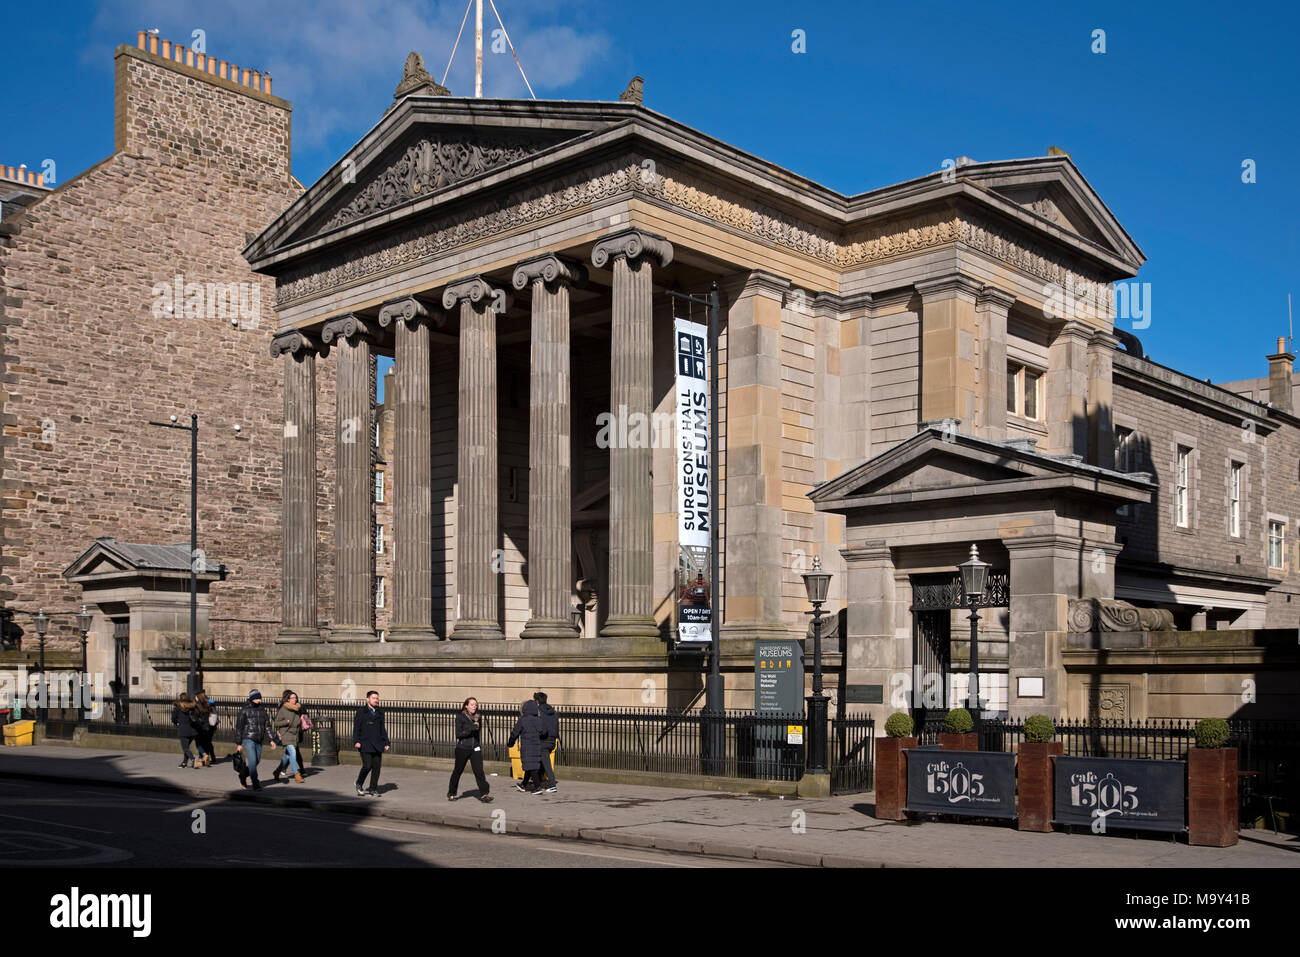 The Surgeons' Hall in Edinburgh, designed by William Playfair, is the headquarters of the Royal College of Surgeons of Edinburgh - Stock Image